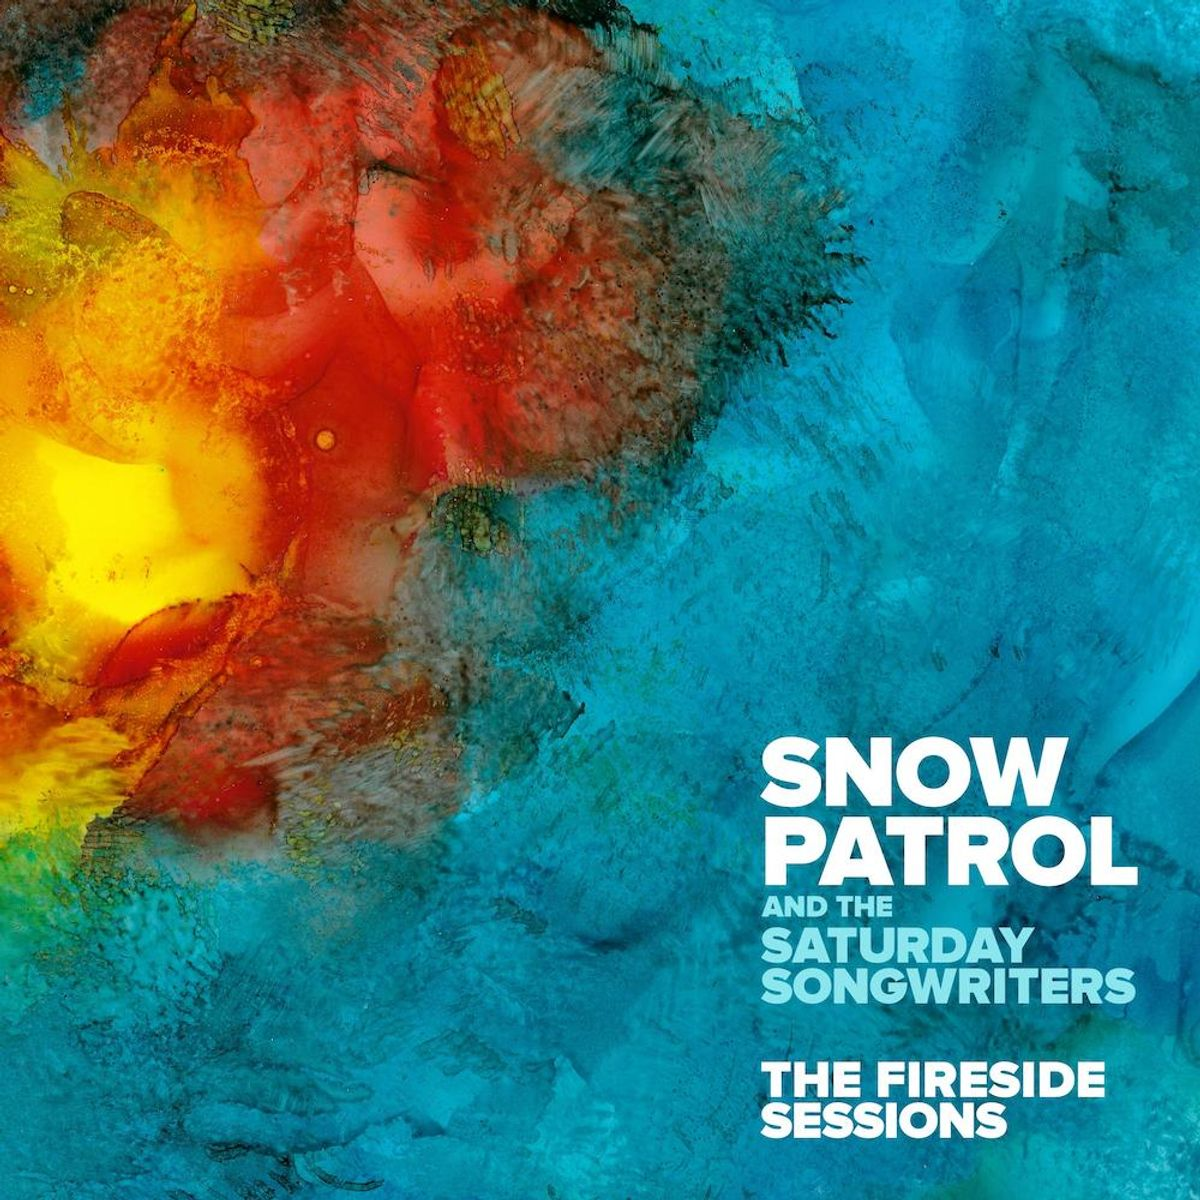 The Fireside Sessions EP